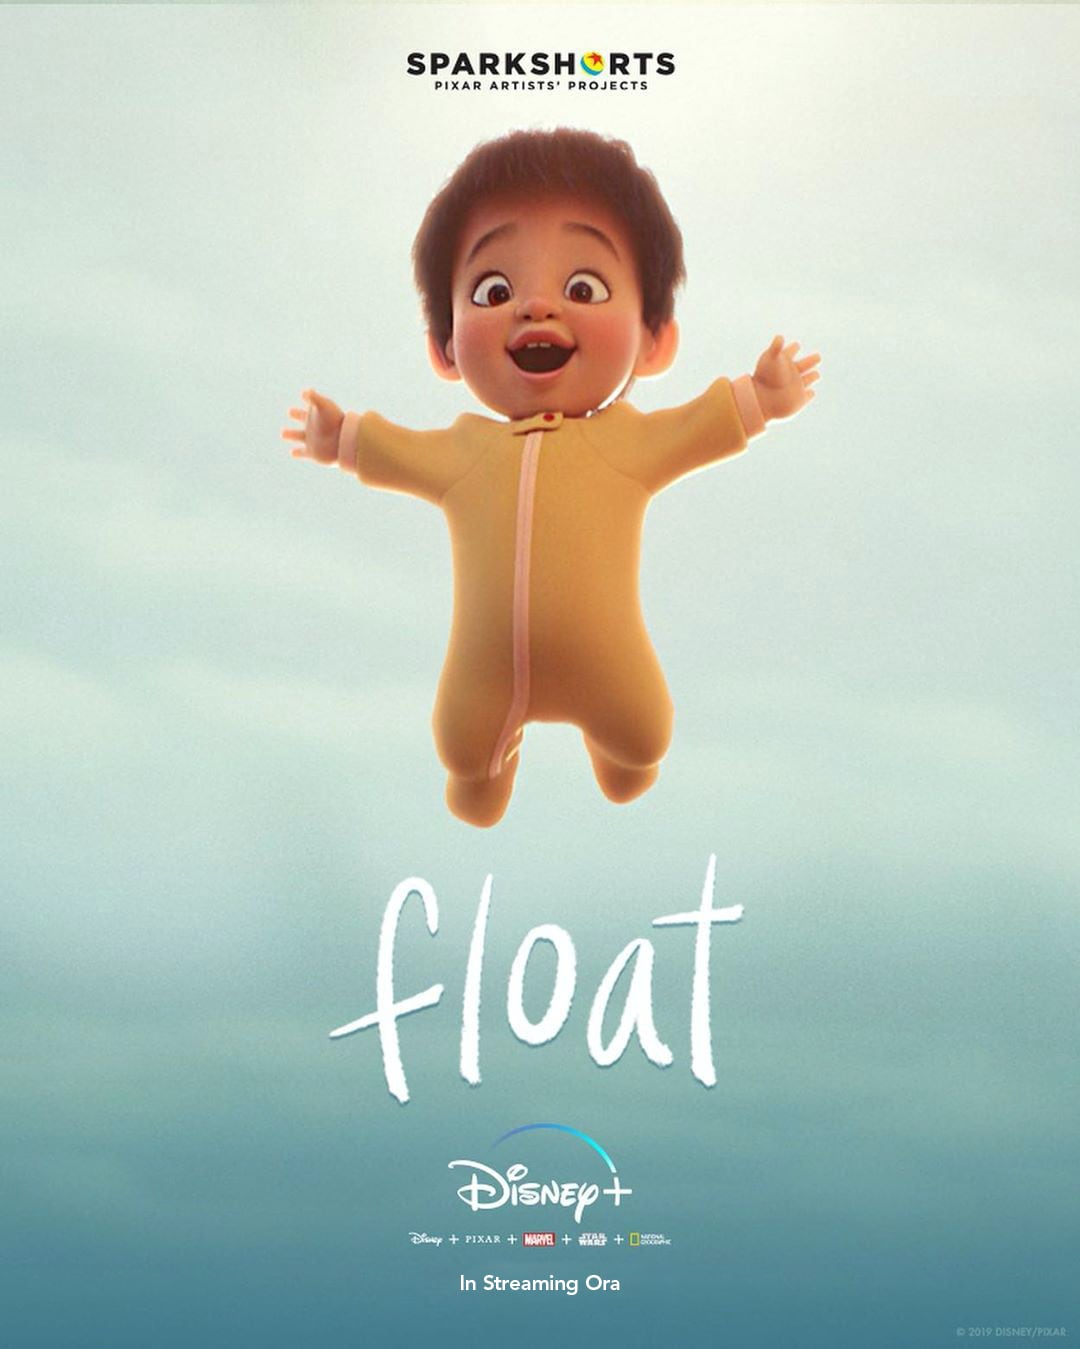 Disney+ Float